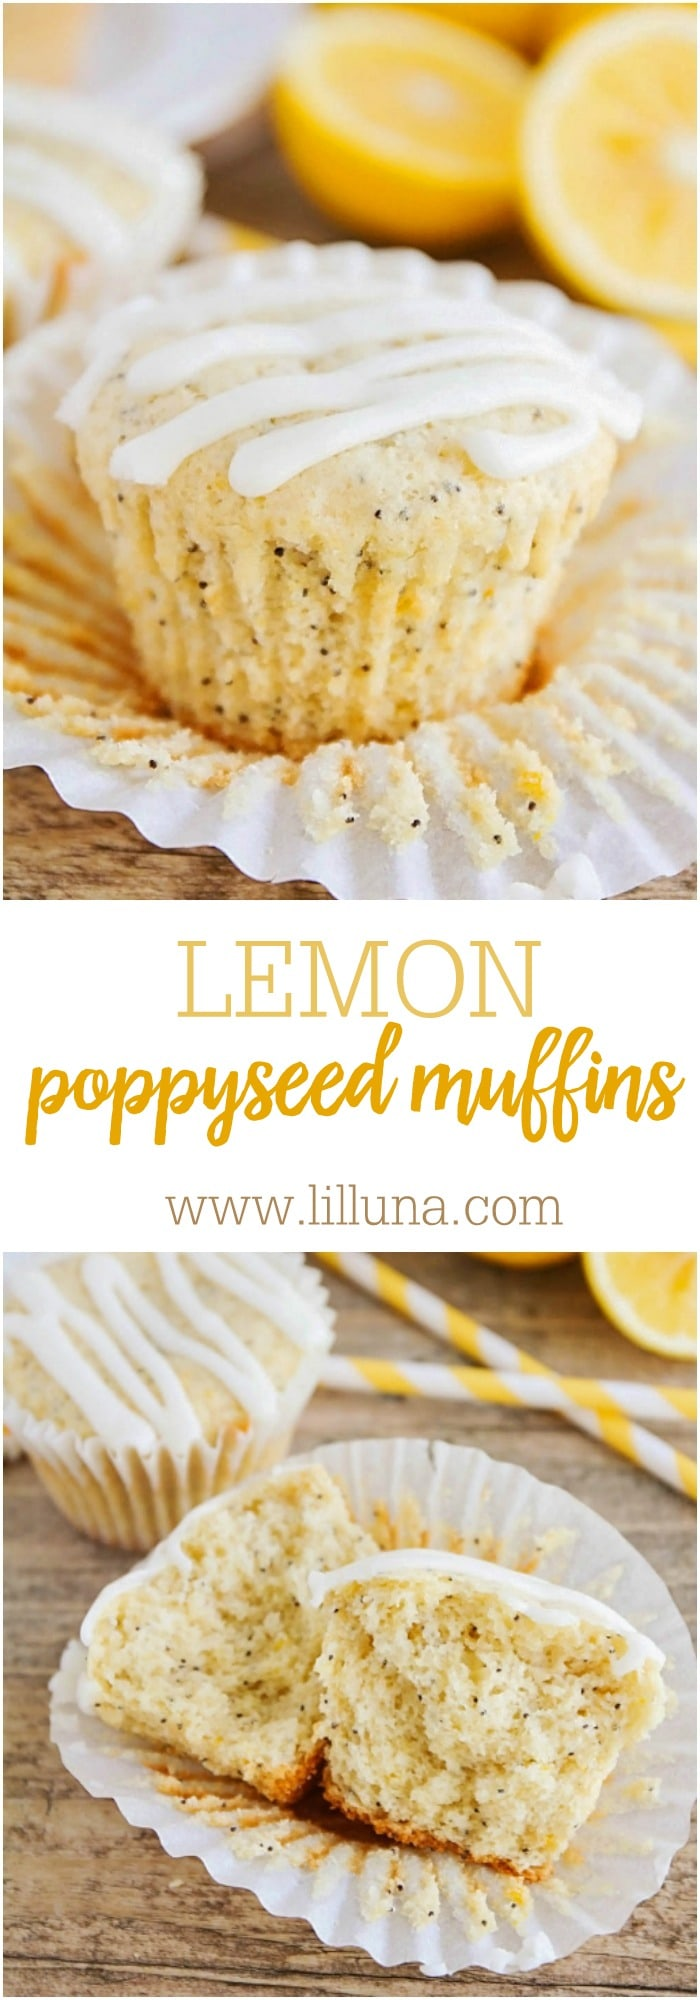 Glazed Lemon Poppy Seed Muffins on { lilluna.com } Soft & delicious with a yummy glaze!!